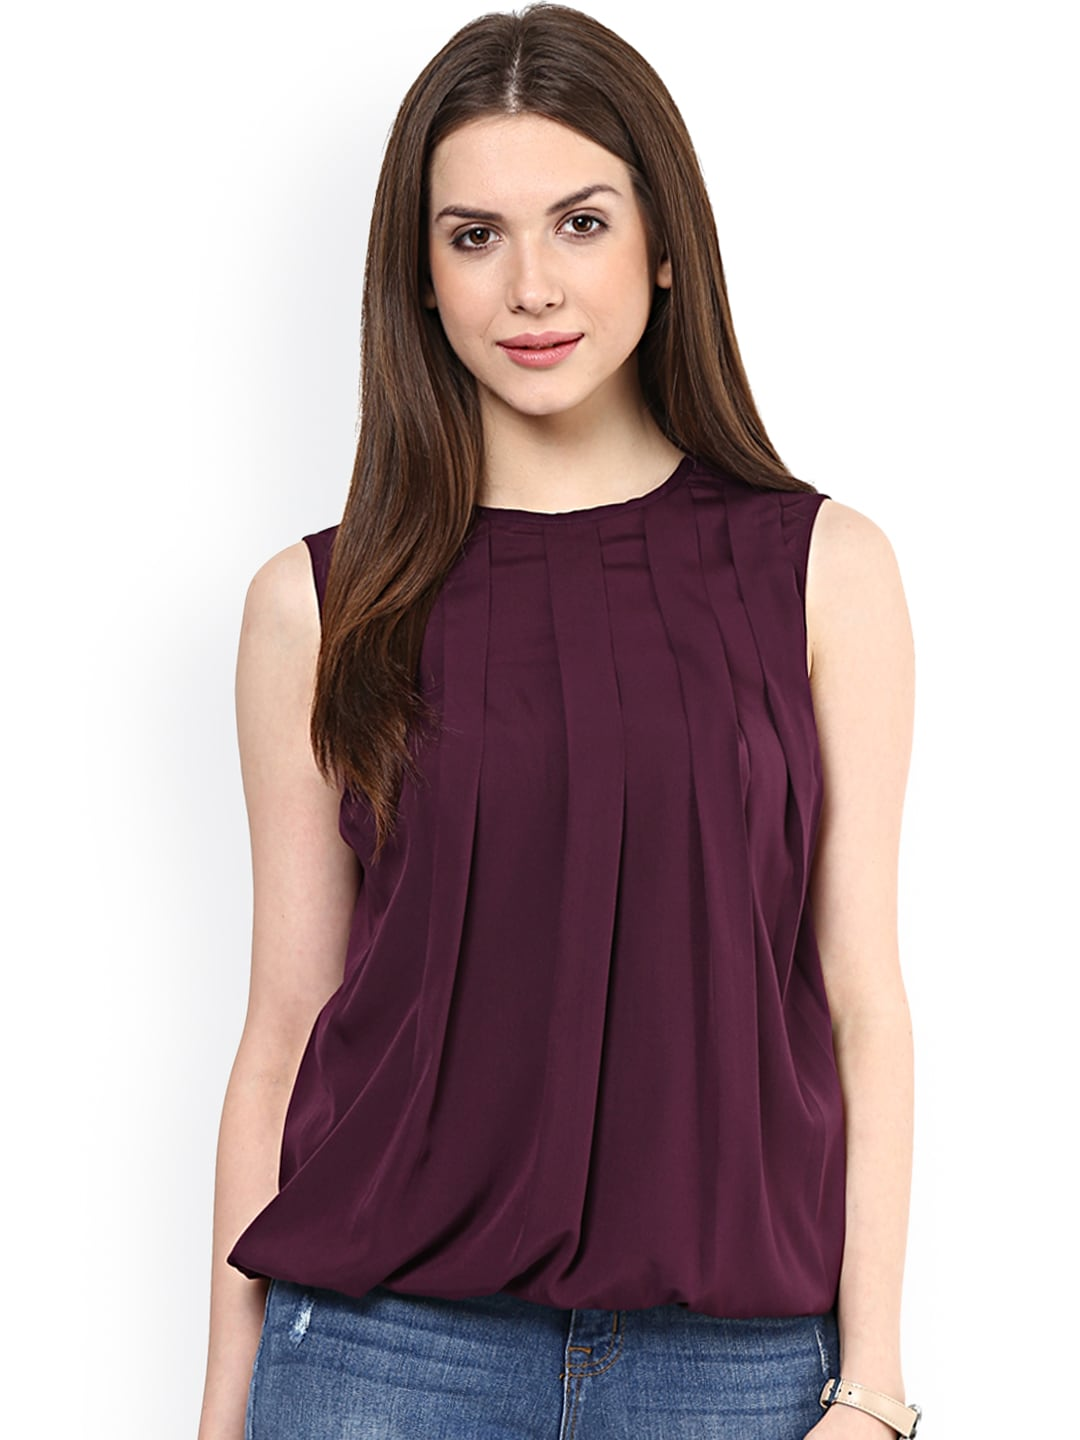 Tops. The start of an outfit begins with the top. And with such a great assortment of stylish women's tops, the options are endless. Shop by style, occasion or more—and be sure to check out fashionable finds in petite sizes too!